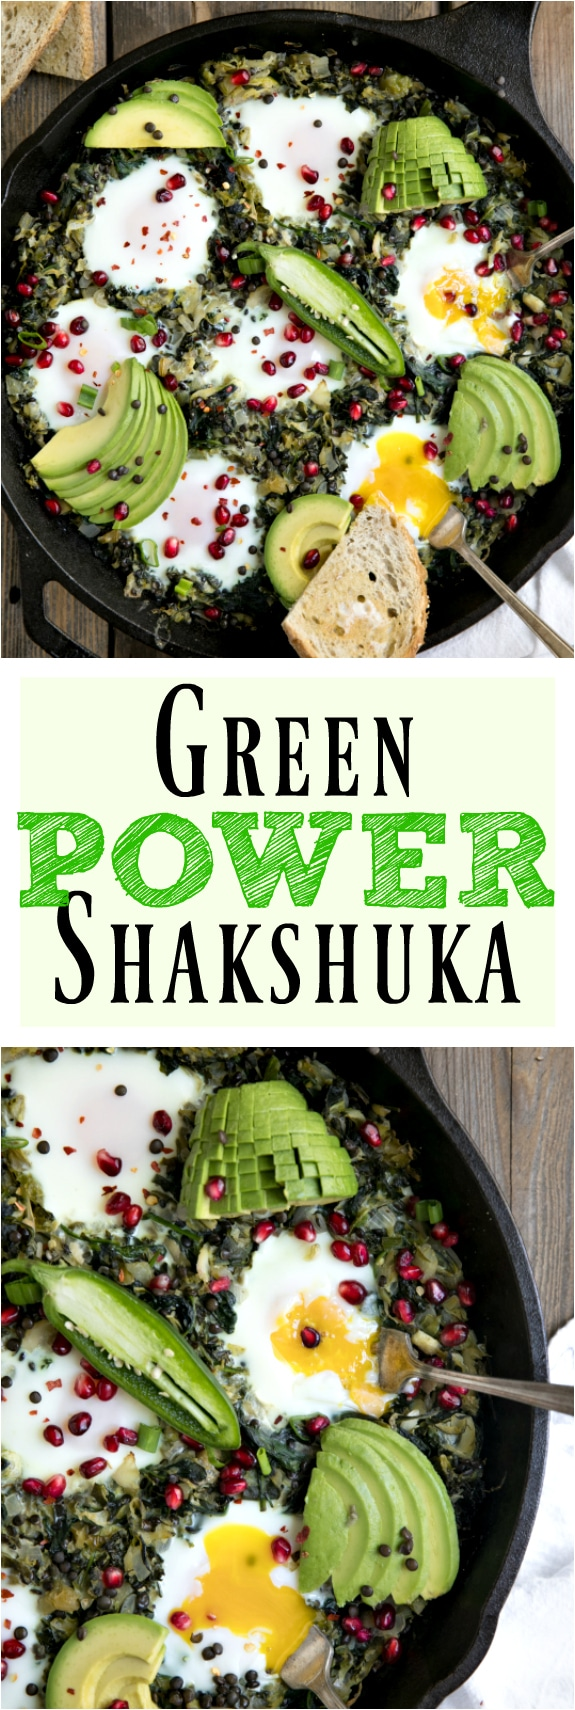 Green Shakshuka via @theforkedspoon #kale #shakshuka #eggs #healthy #lowcarbrecipe #easyrecipe | Find this recipe and more at, https://theforkedspoon.com/